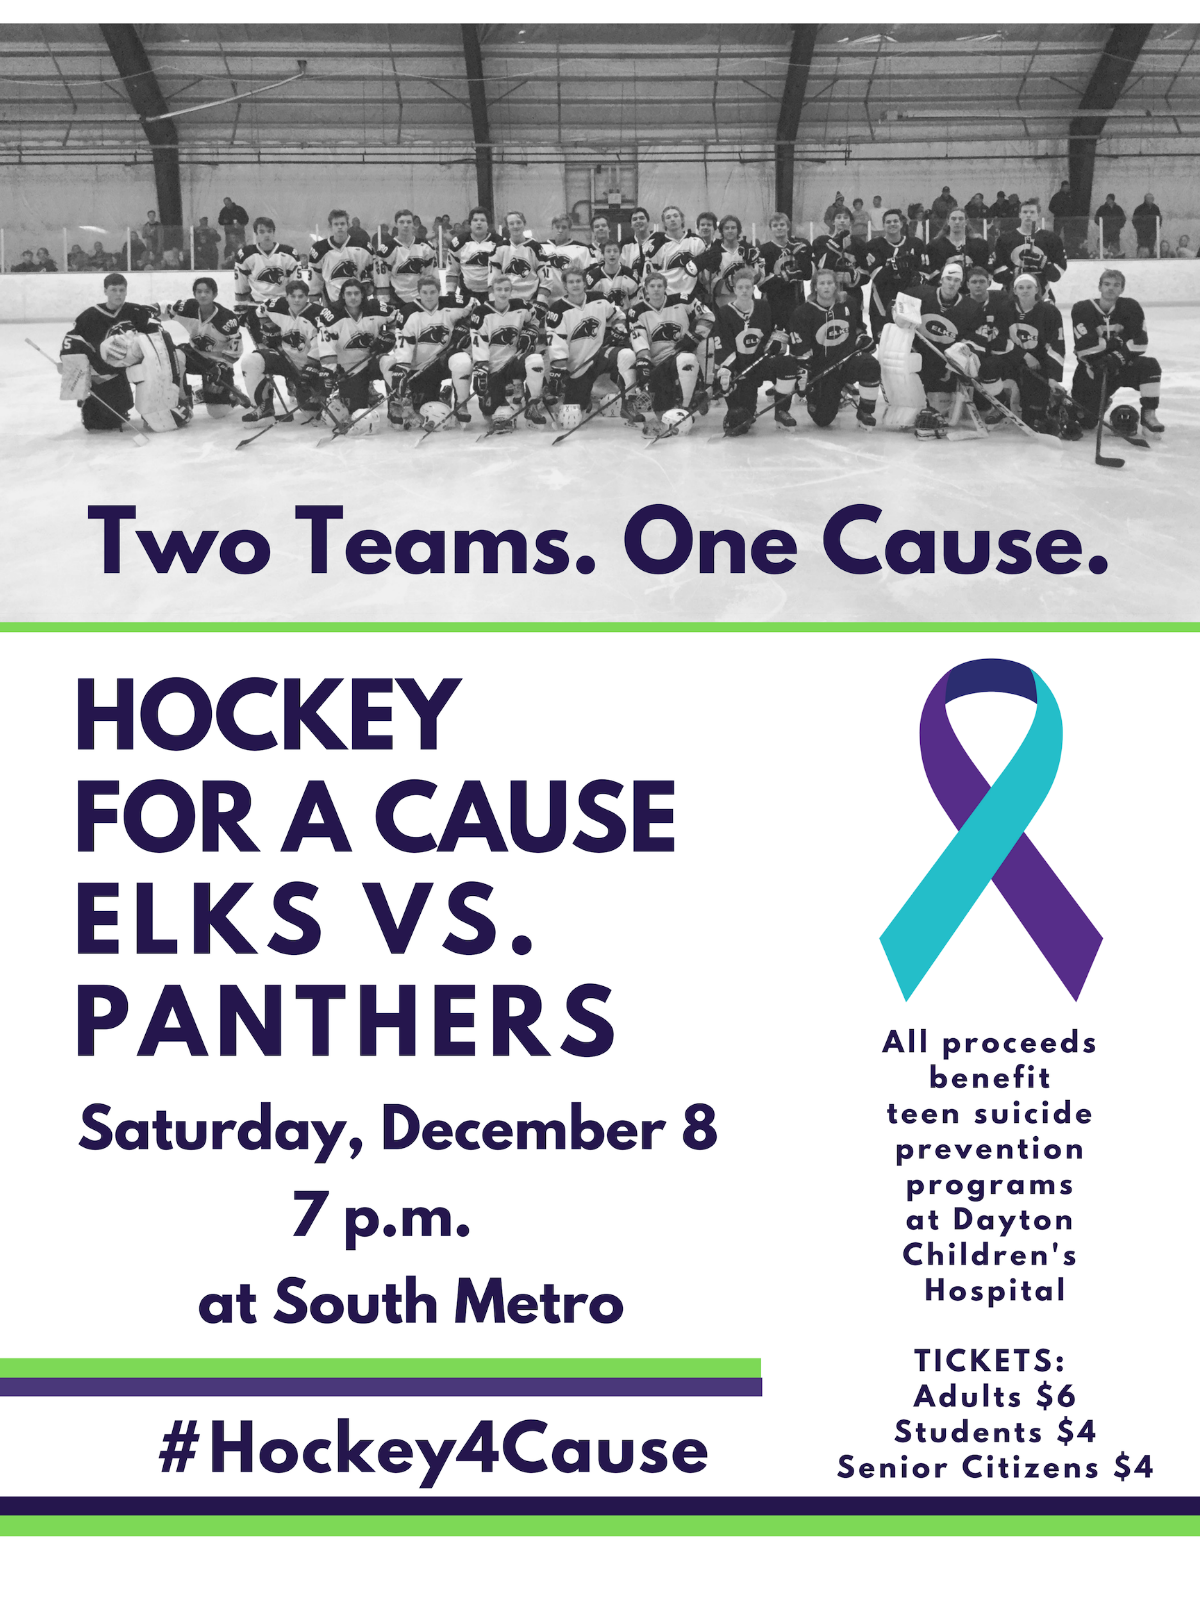 Hockey For A Cause – Saturday, December 8th